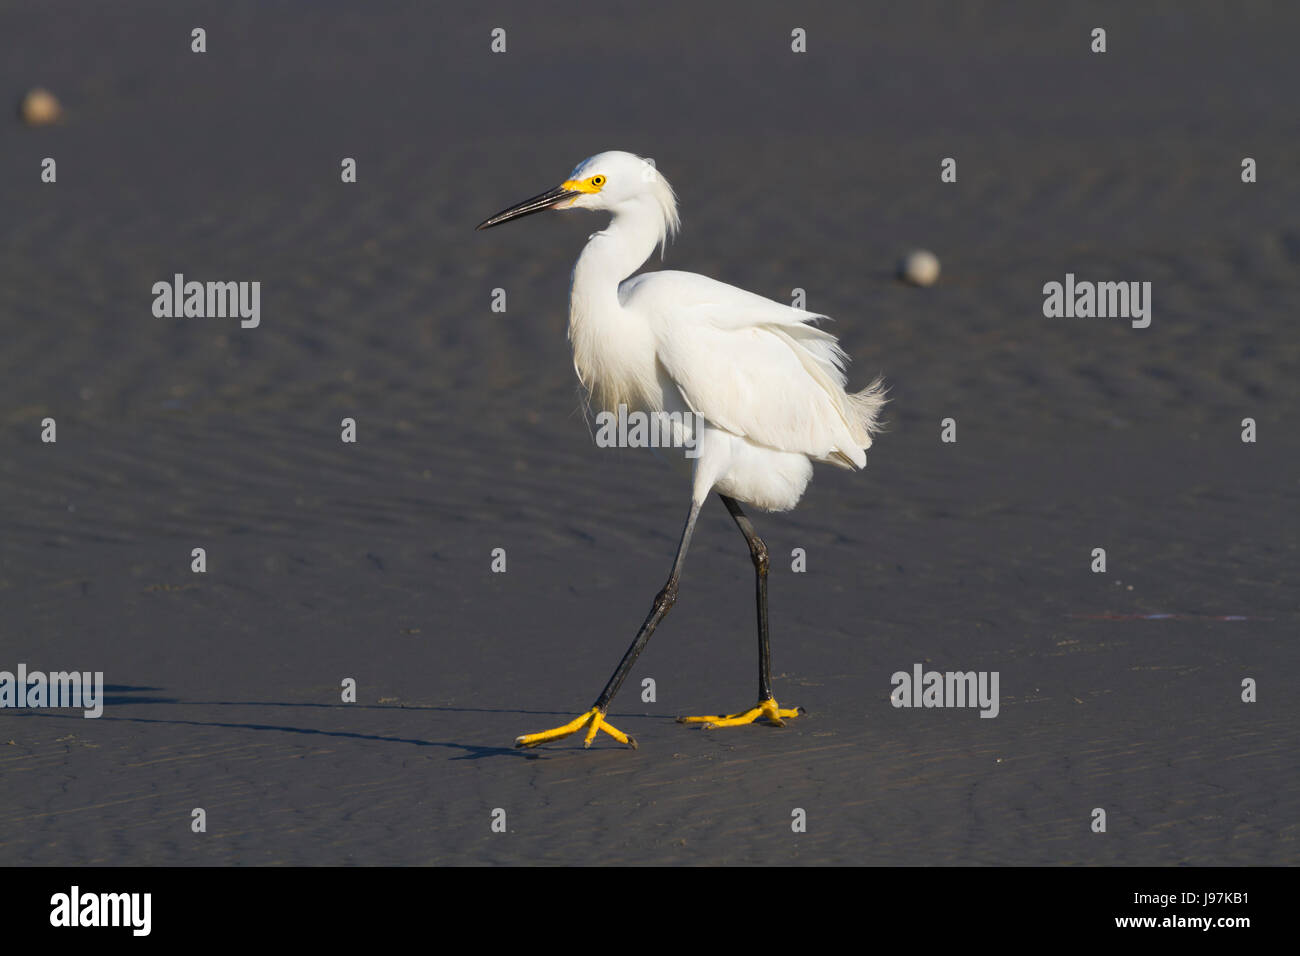 The snowy egret is fishing Stock Photo